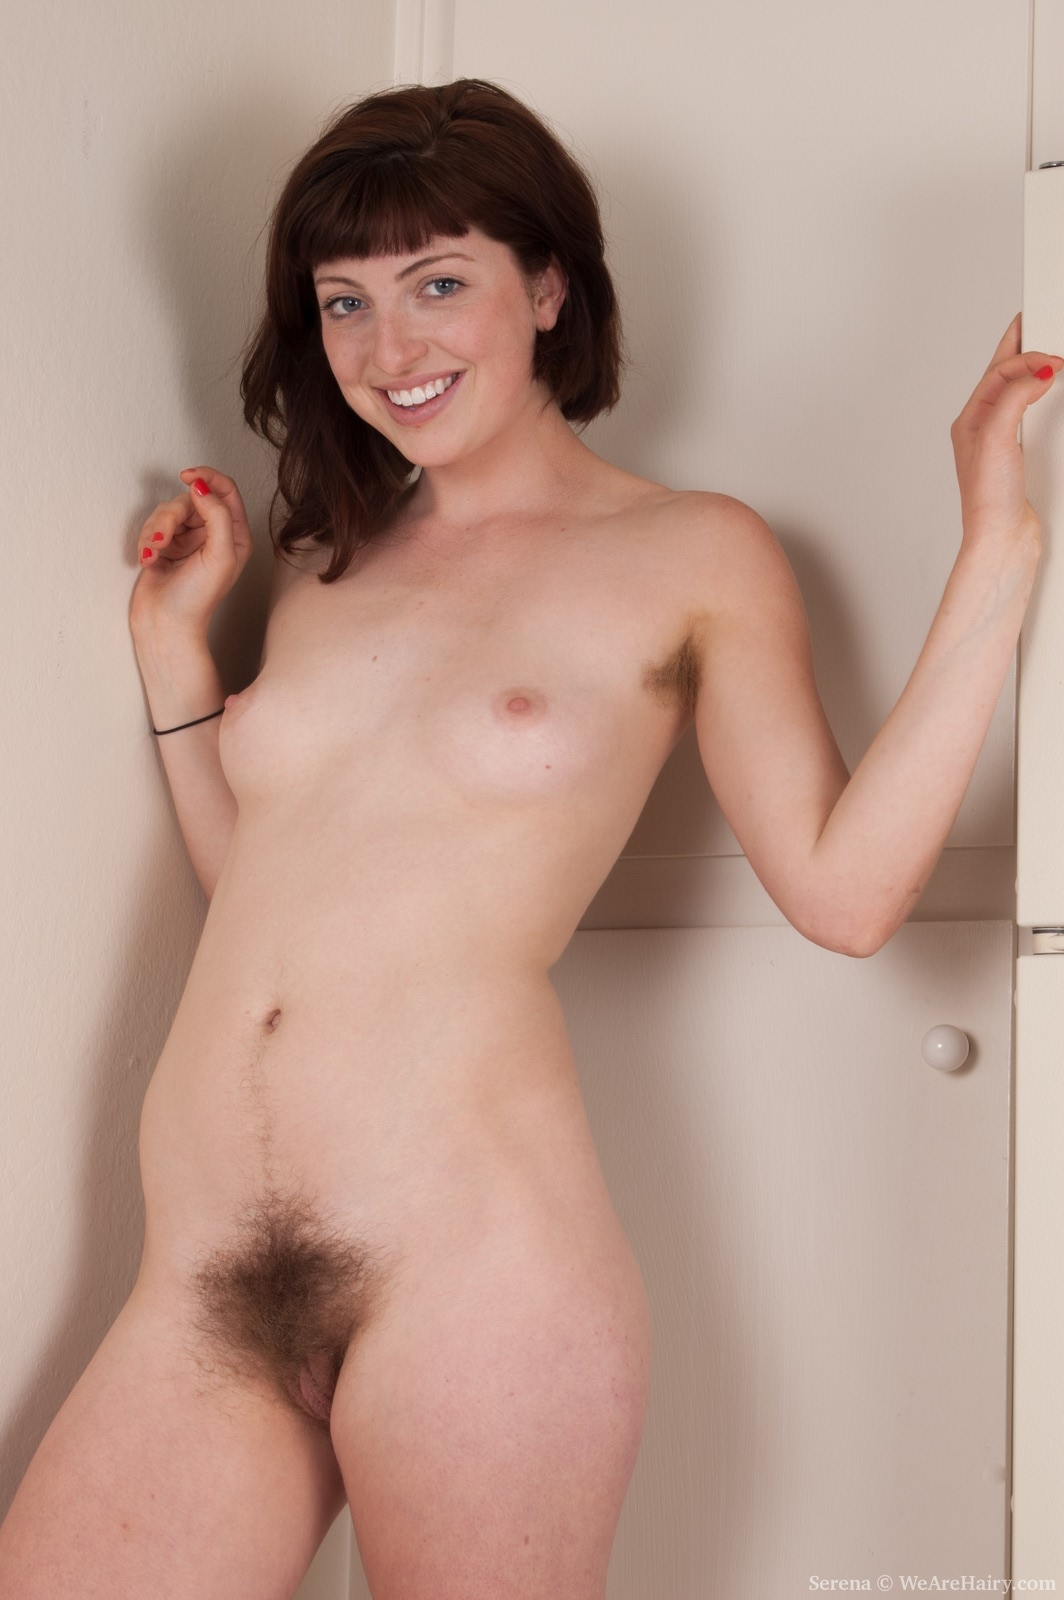 ... with hairy nipples - hairy ladies, marika hairy @ Hairy Naked Girls